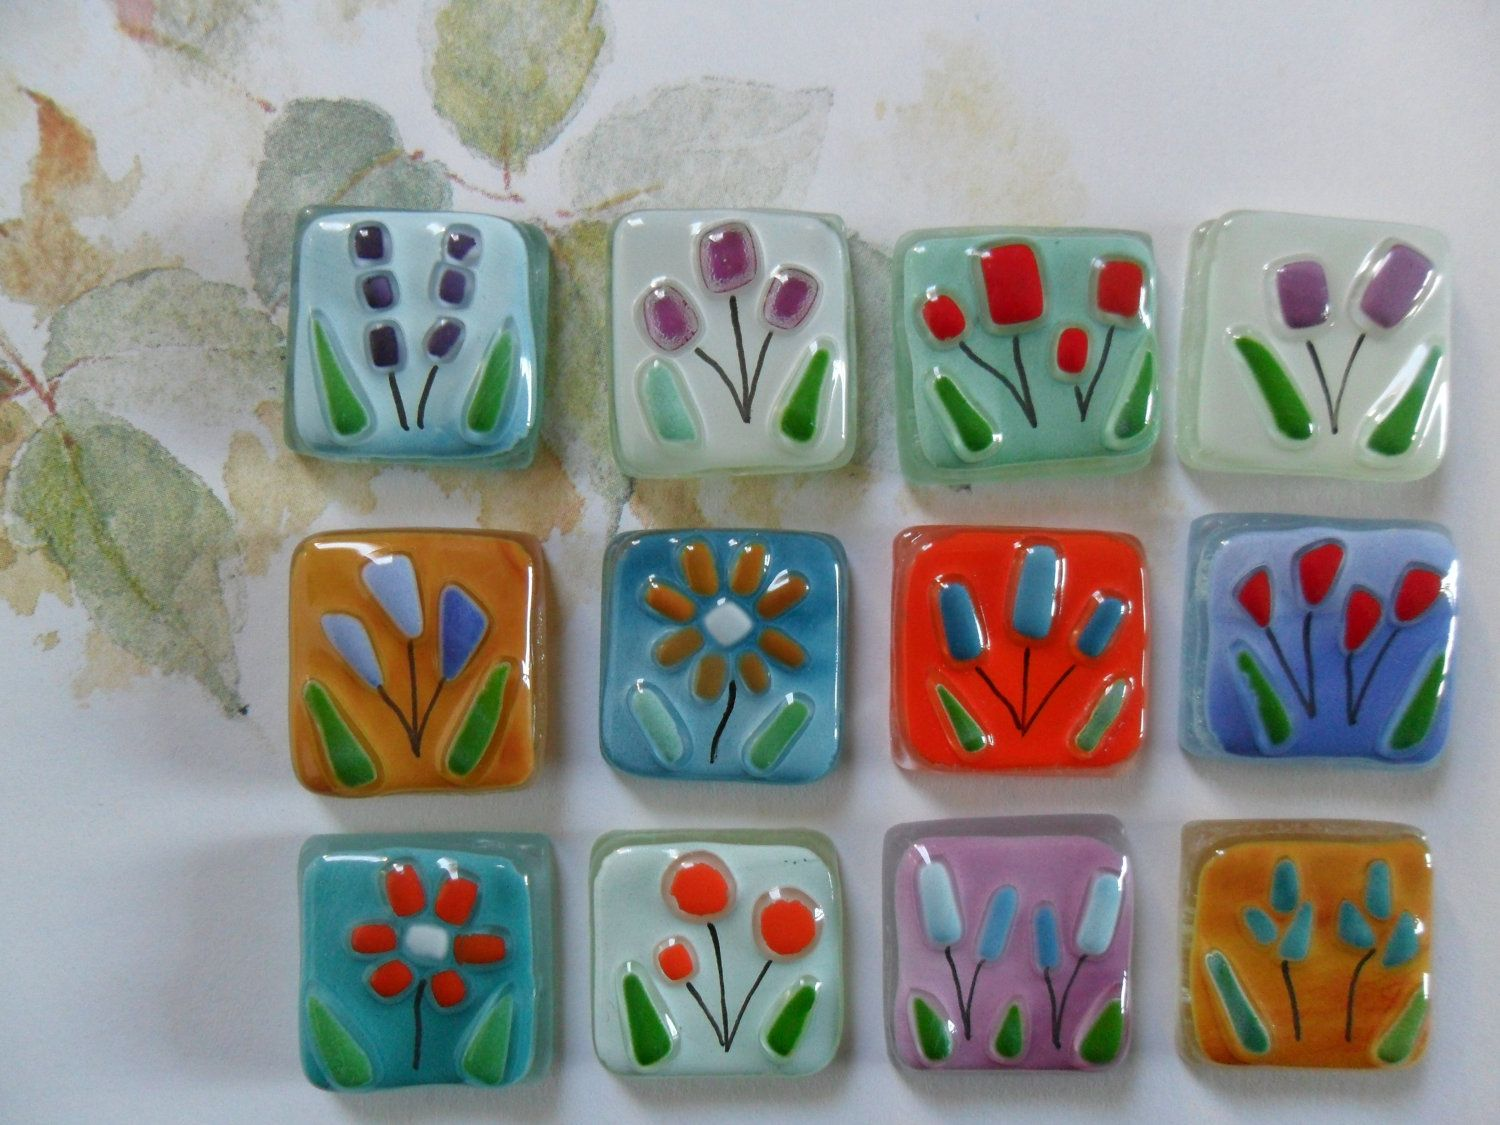 Fused glass projects fused glass tiles flowers floral